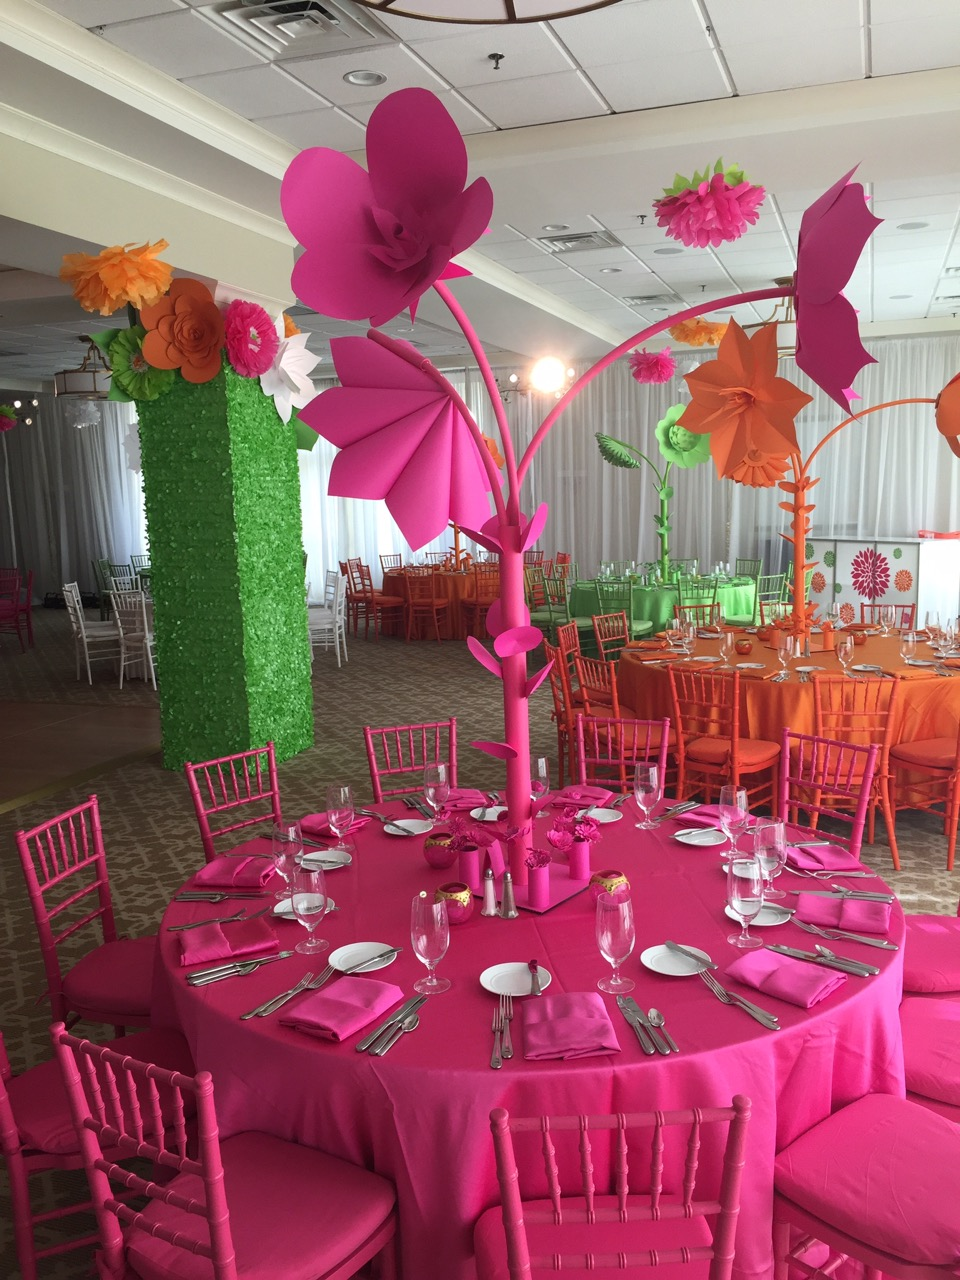 Eggsotic+Events+NJ+Event+Design+Lighting+Decor+Rental++-+15.jpg